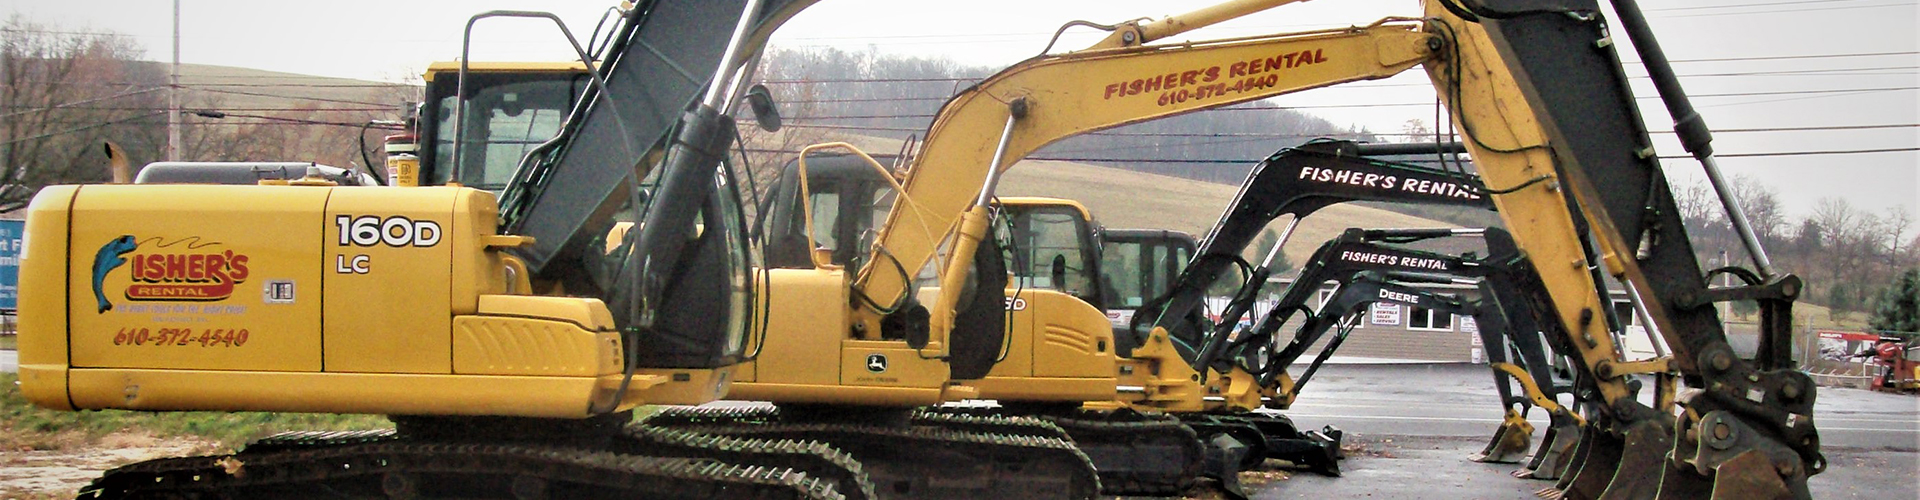 Equipment Rentals in Berks County